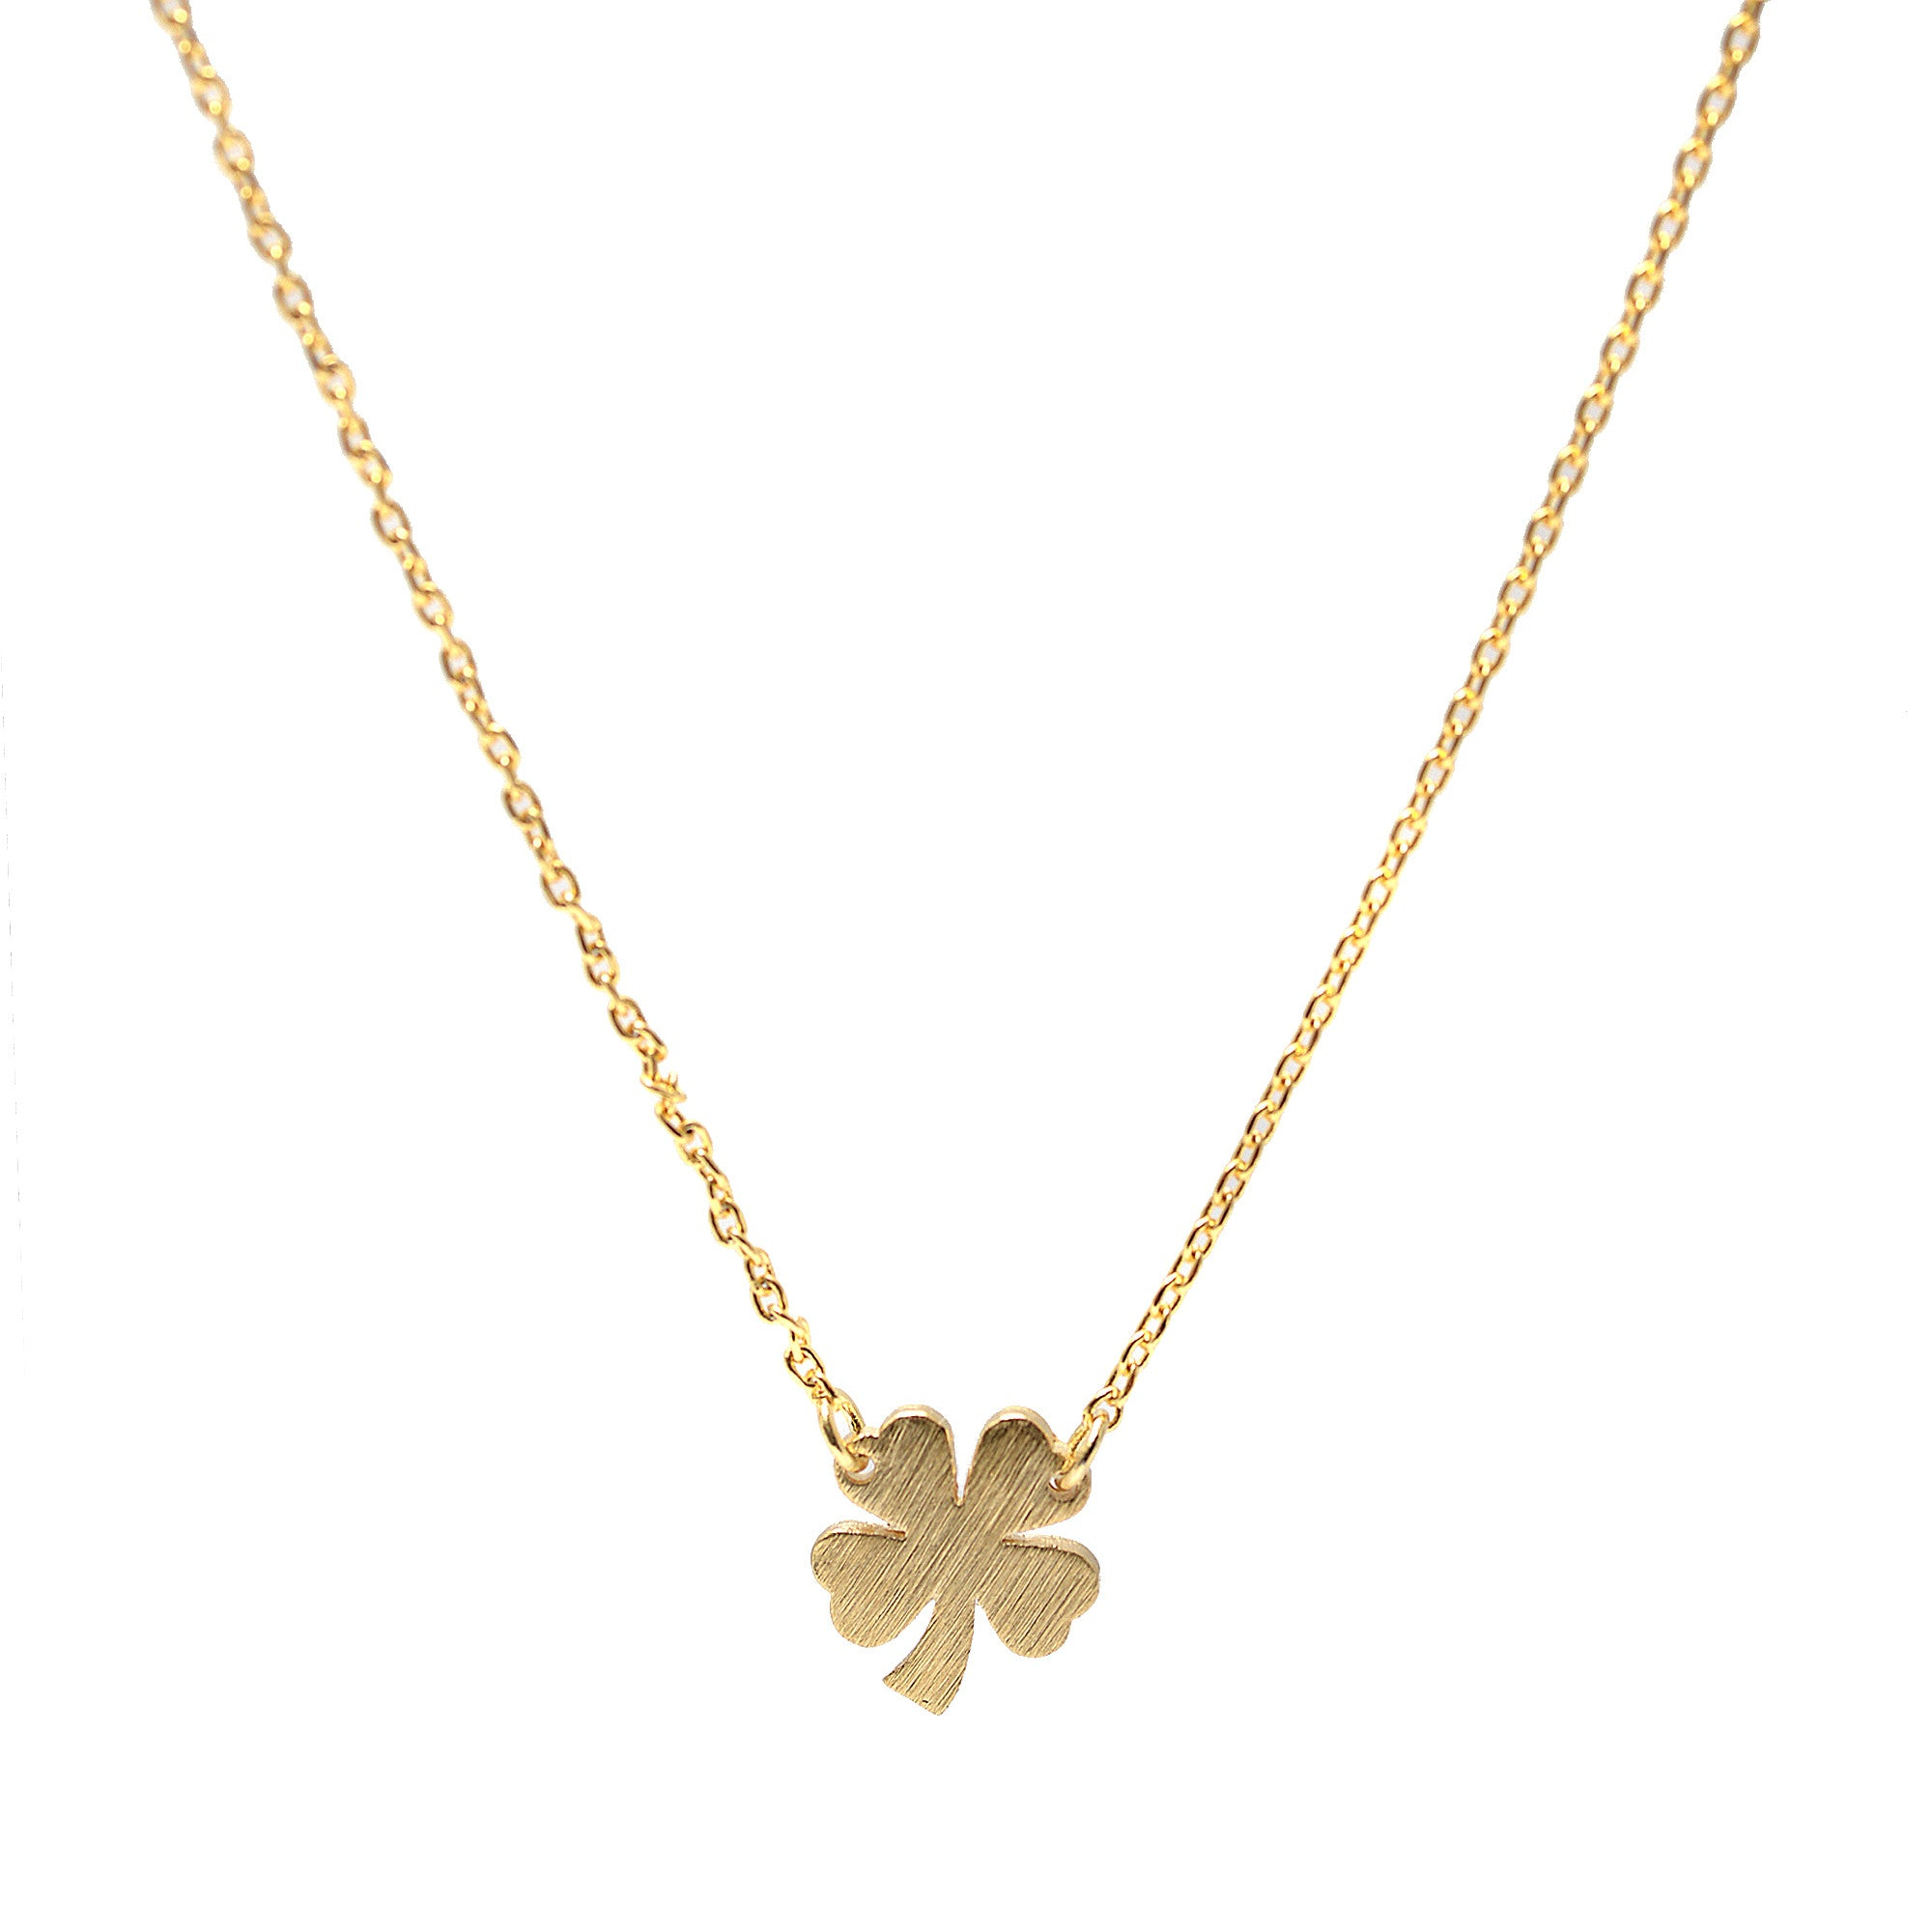 outline gold jewelry necklace clover four fullxfull listing ndld zoom leaf il